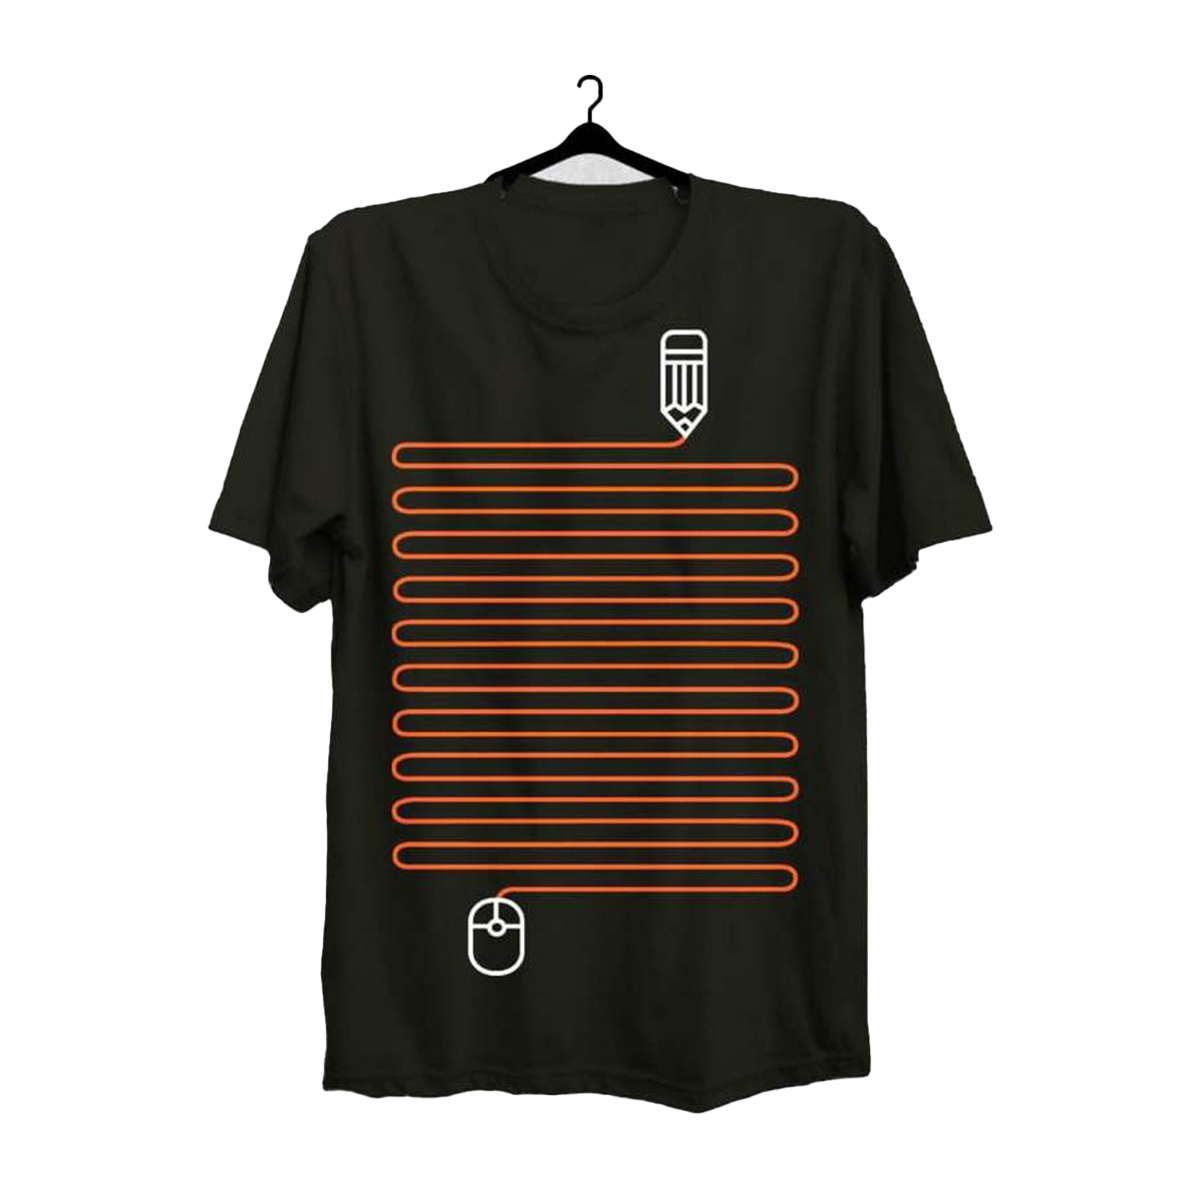 New high quality lining style printed T shirt for men